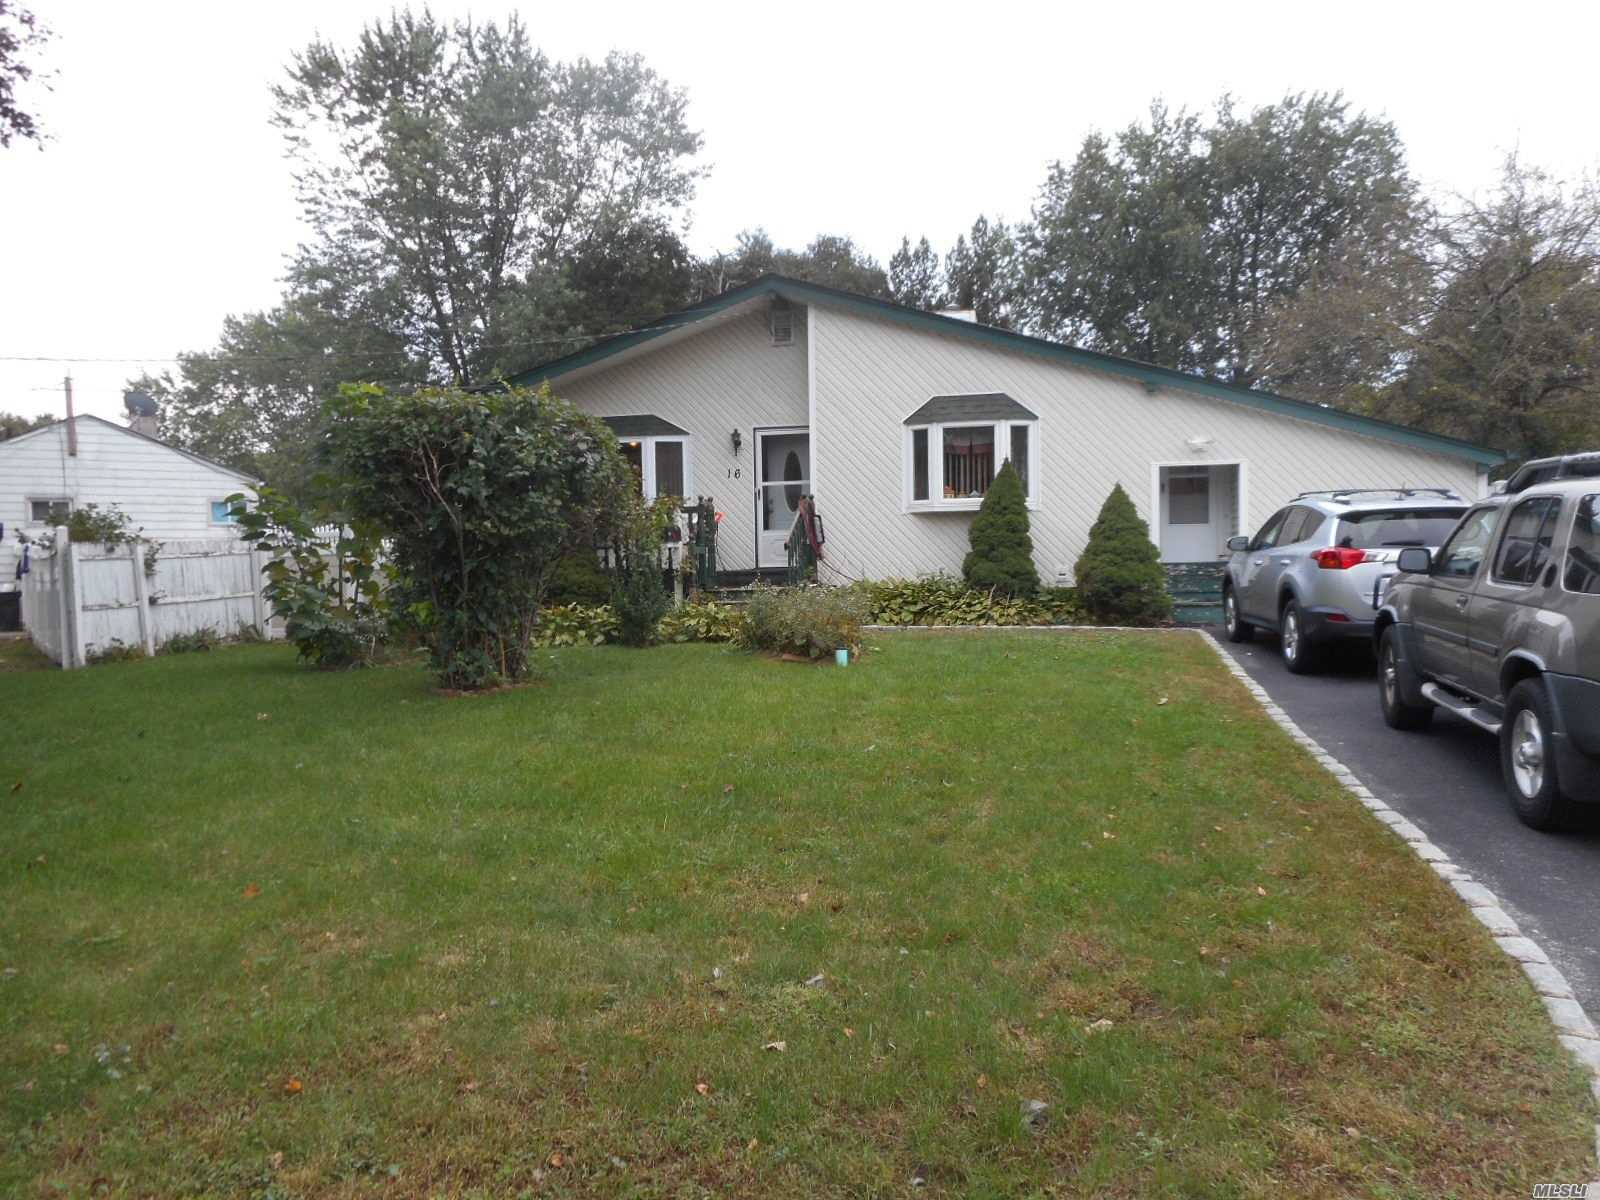 Beutifull Ranch In North Brentwood Close To All, 3Bdr, 2 Ful Baths, Full Finished Basement With Ose On C Of O , Large Extra Room On C Of O As Storage. Central Air And Much More.